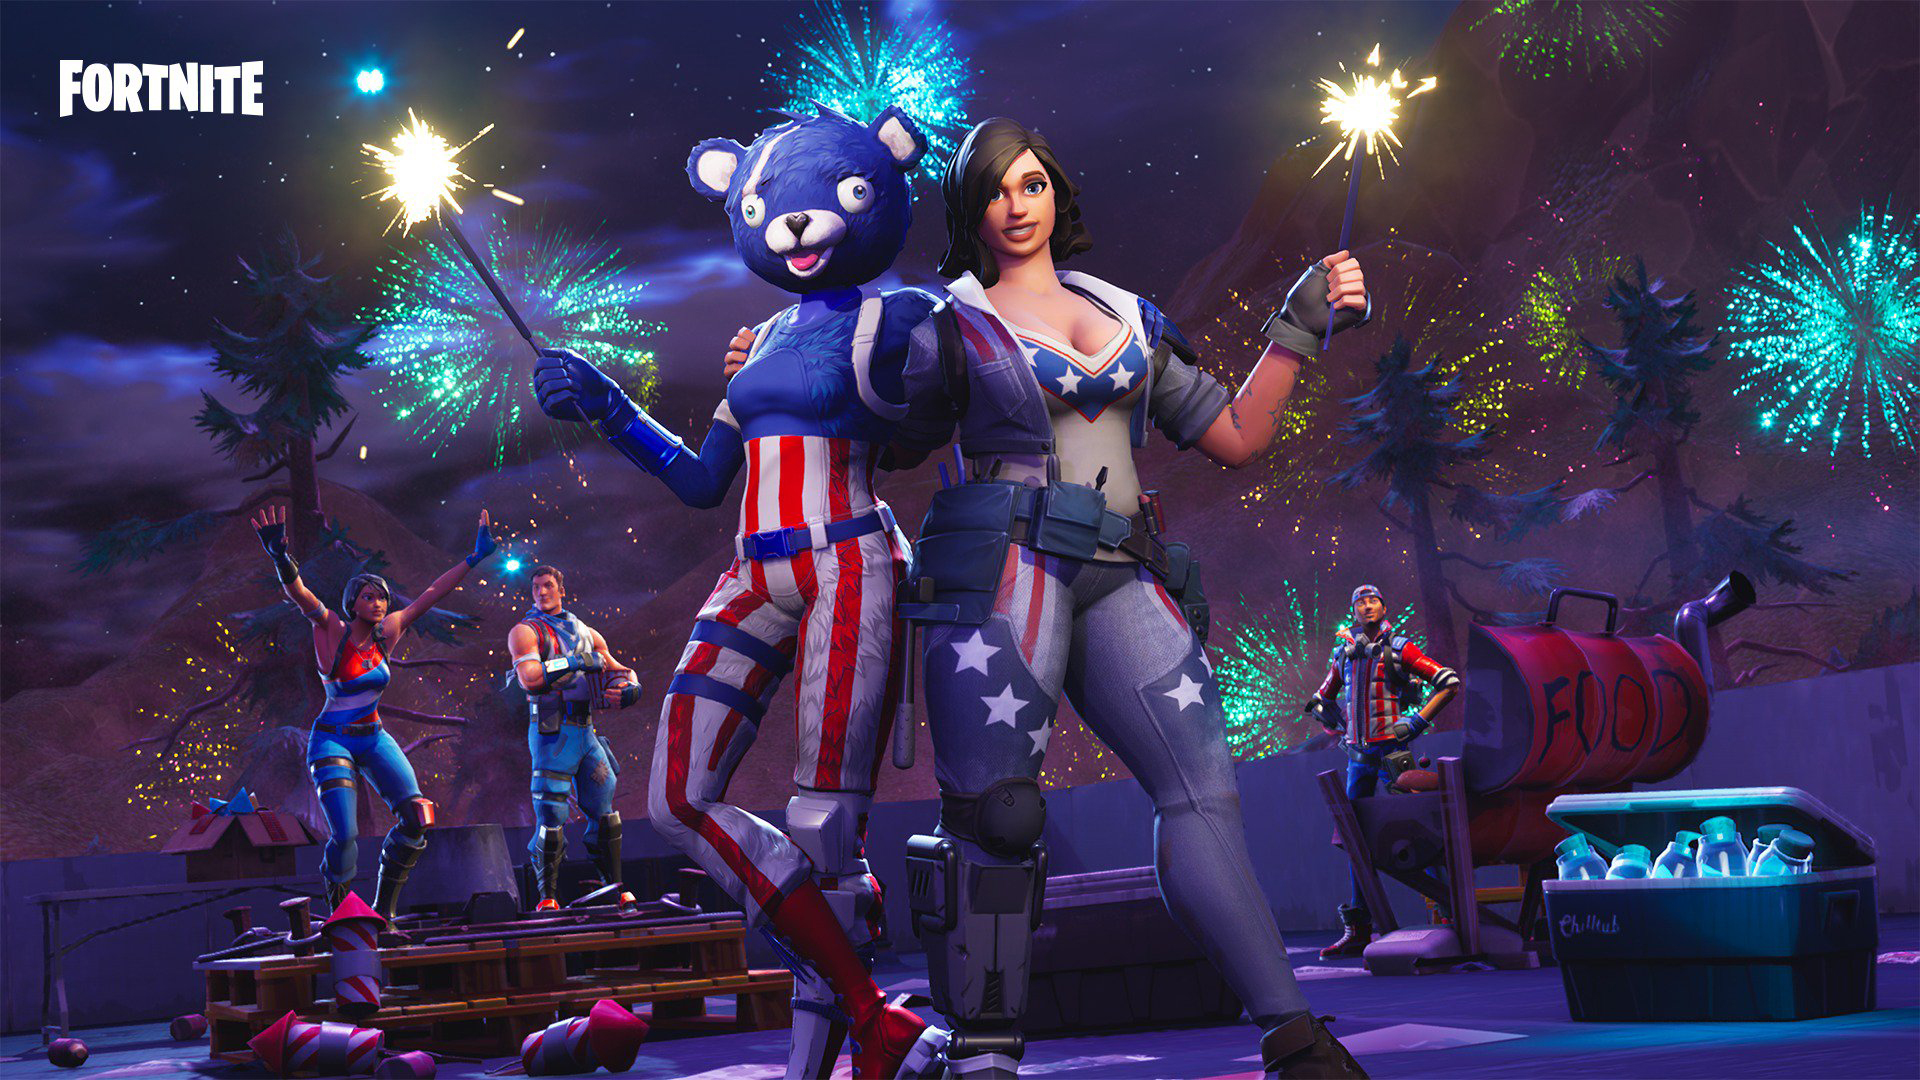 Fortnite Game Backgrounds 4th July 4027 Wallpapers and Stock 1920x1080